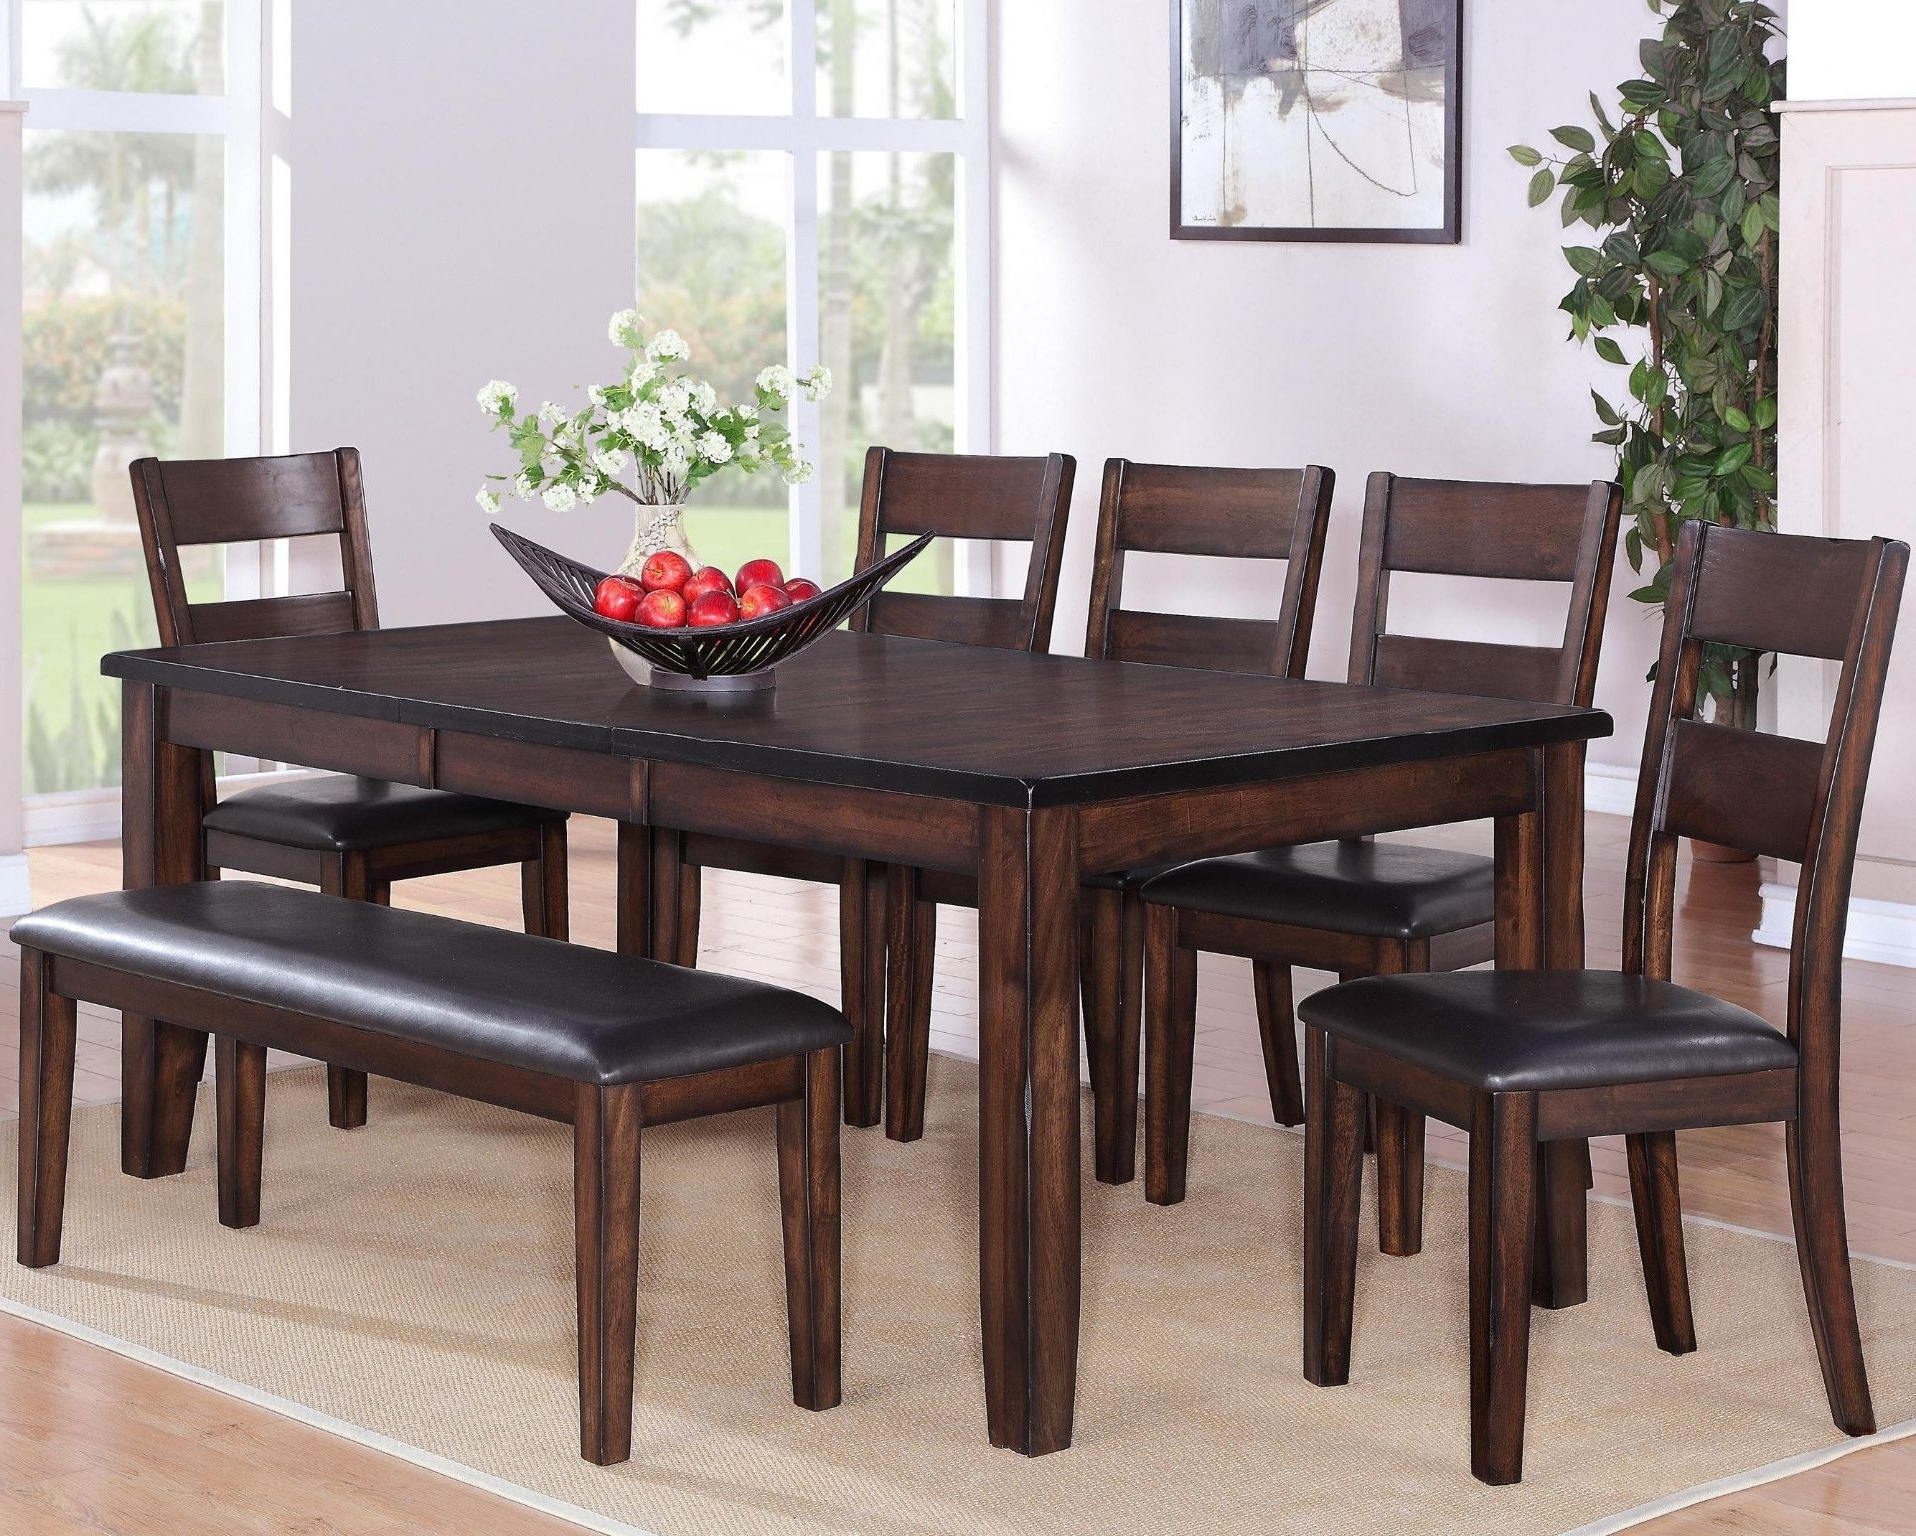 Maldives 5 Piece Dinette Table And 4 Chairs $699.00 Table $ (View 18 of 25)